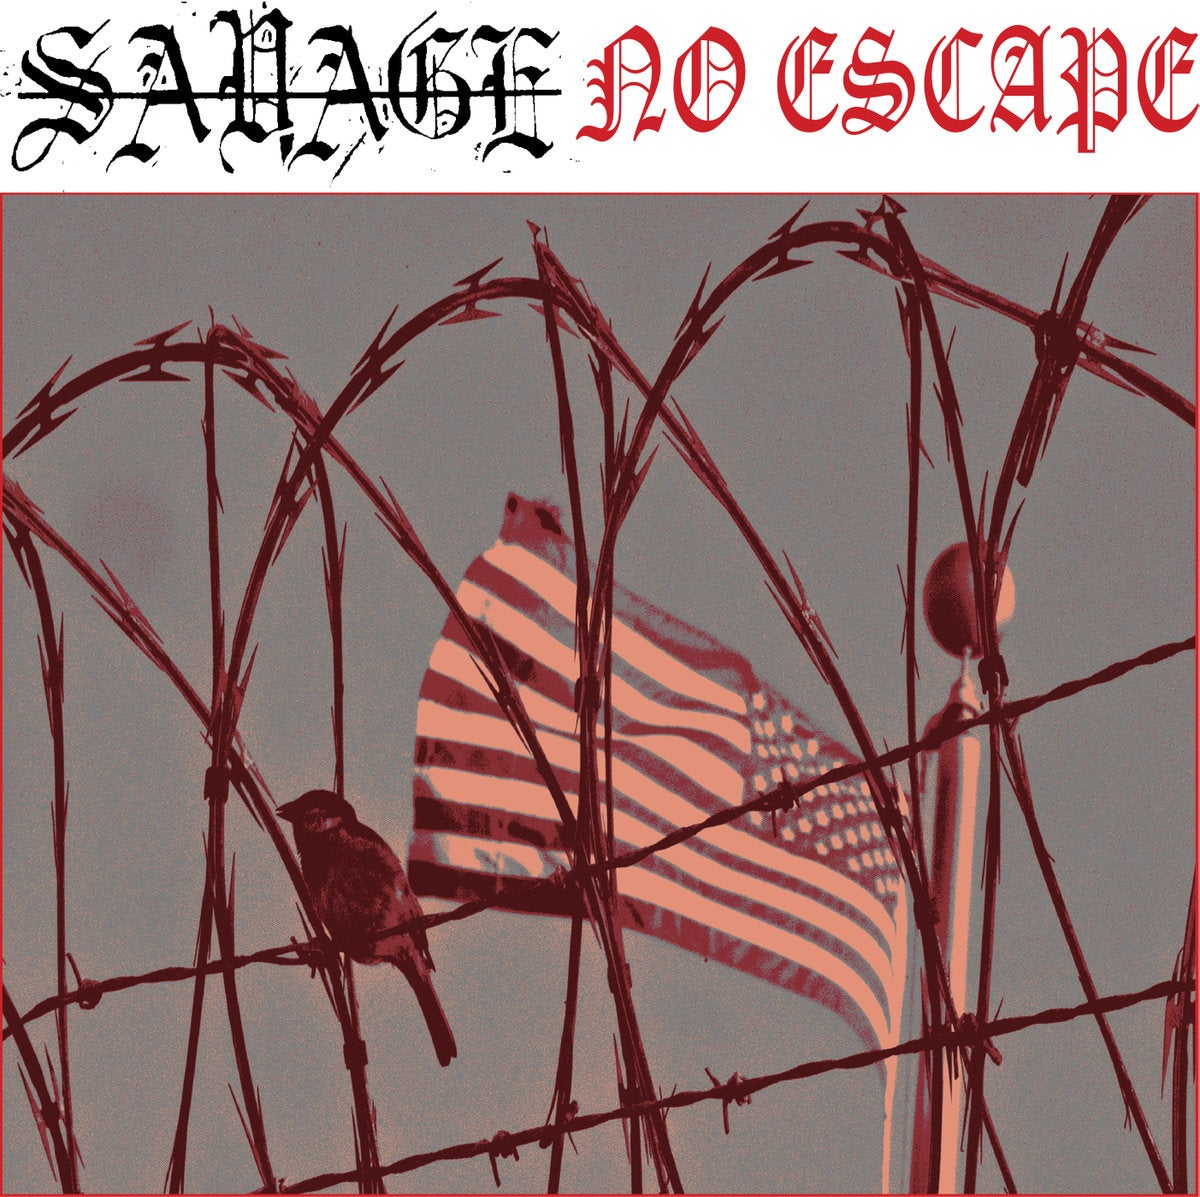 Savage - No Escape tape